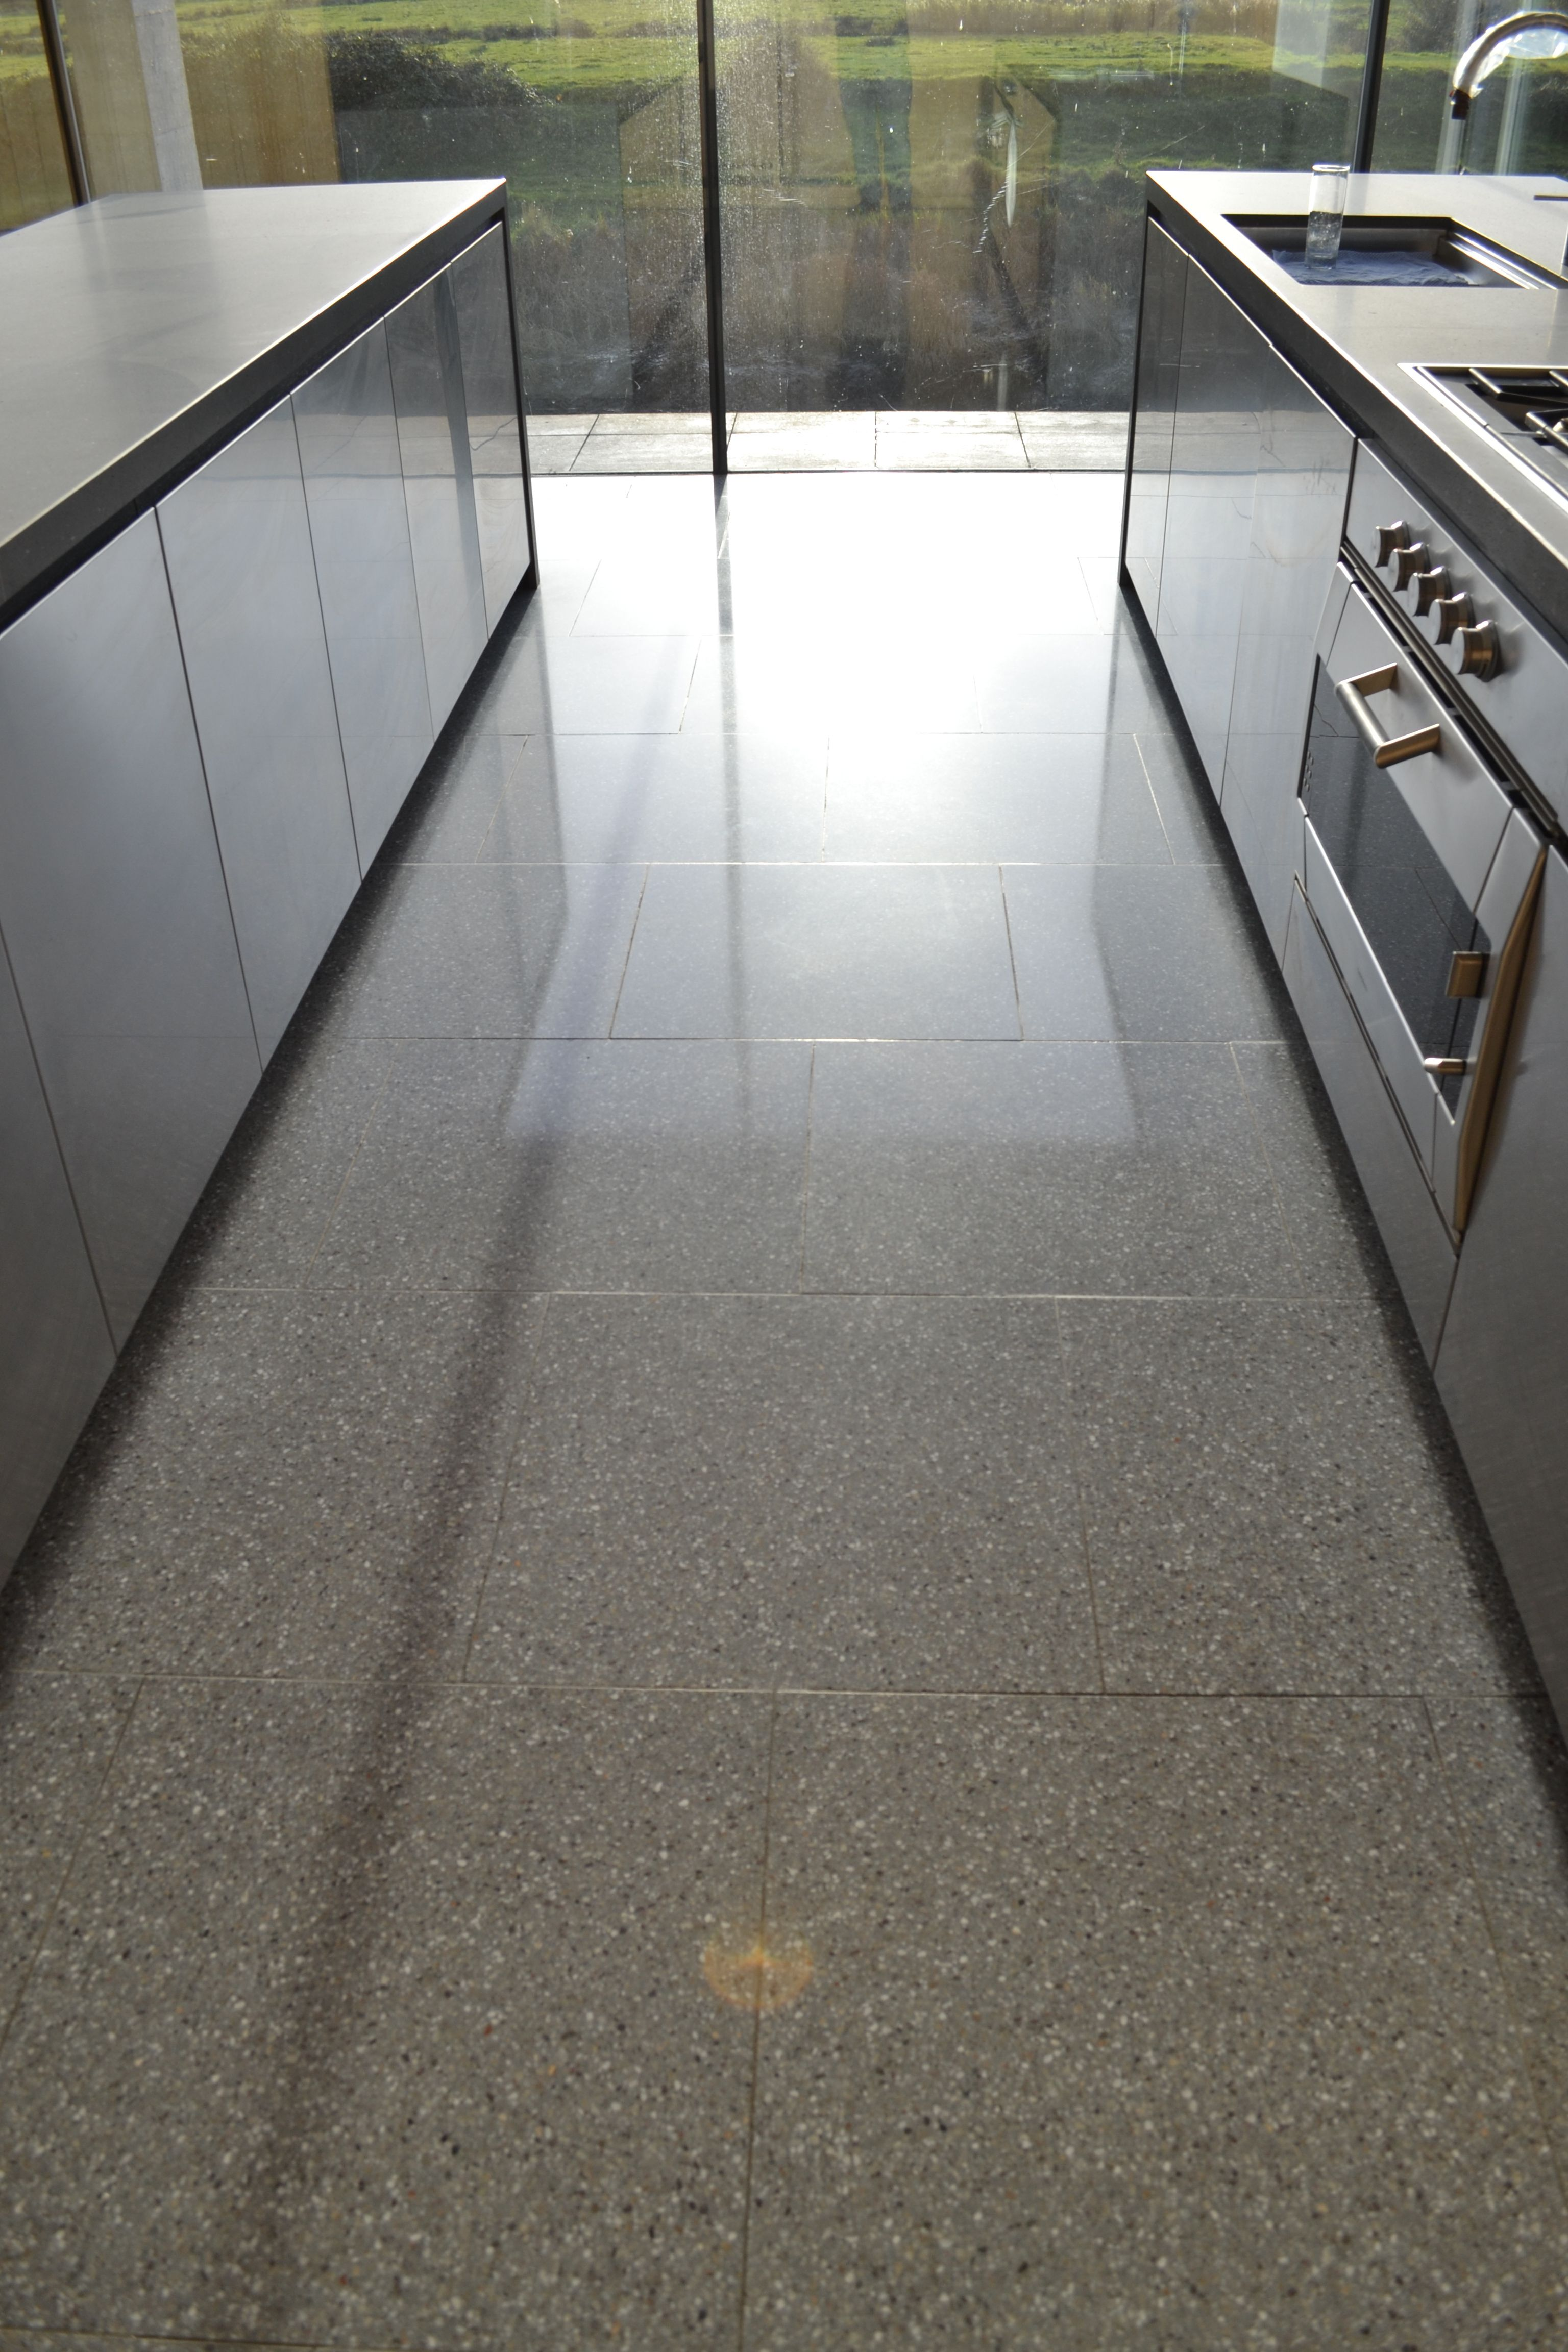 Terrazzo Floor Stair Cleaners Cleaning In 2019 Cleaning